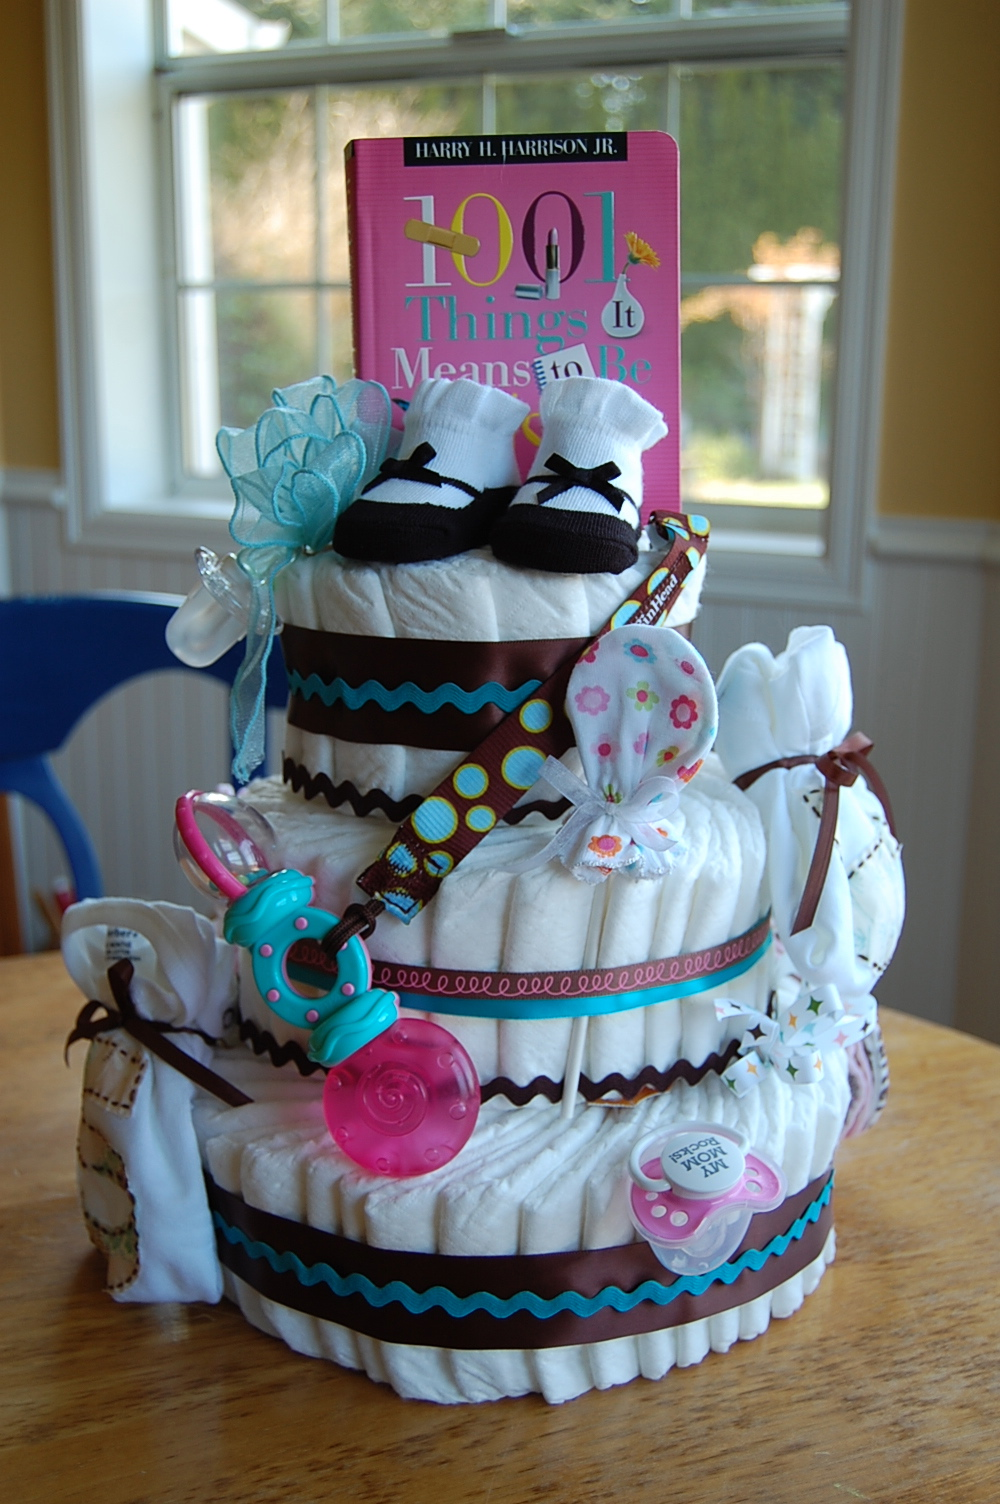 Saltbox treasures how to make a baby diaper cake - Gateau de couche baby shower ...